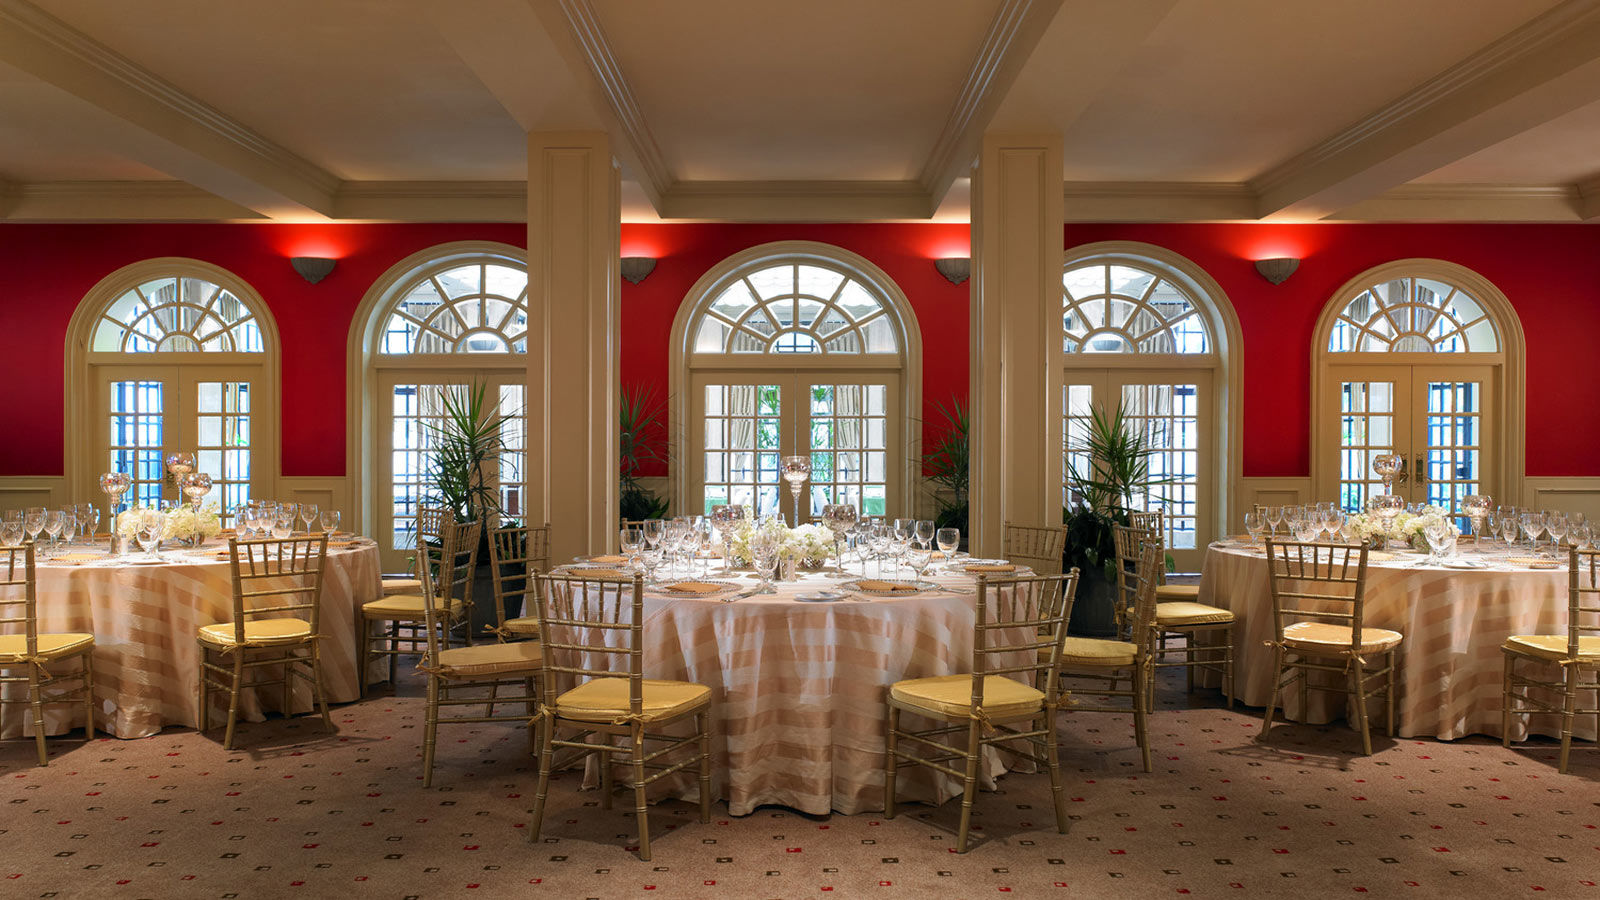 Wedding Venues in Houston - Ballroom